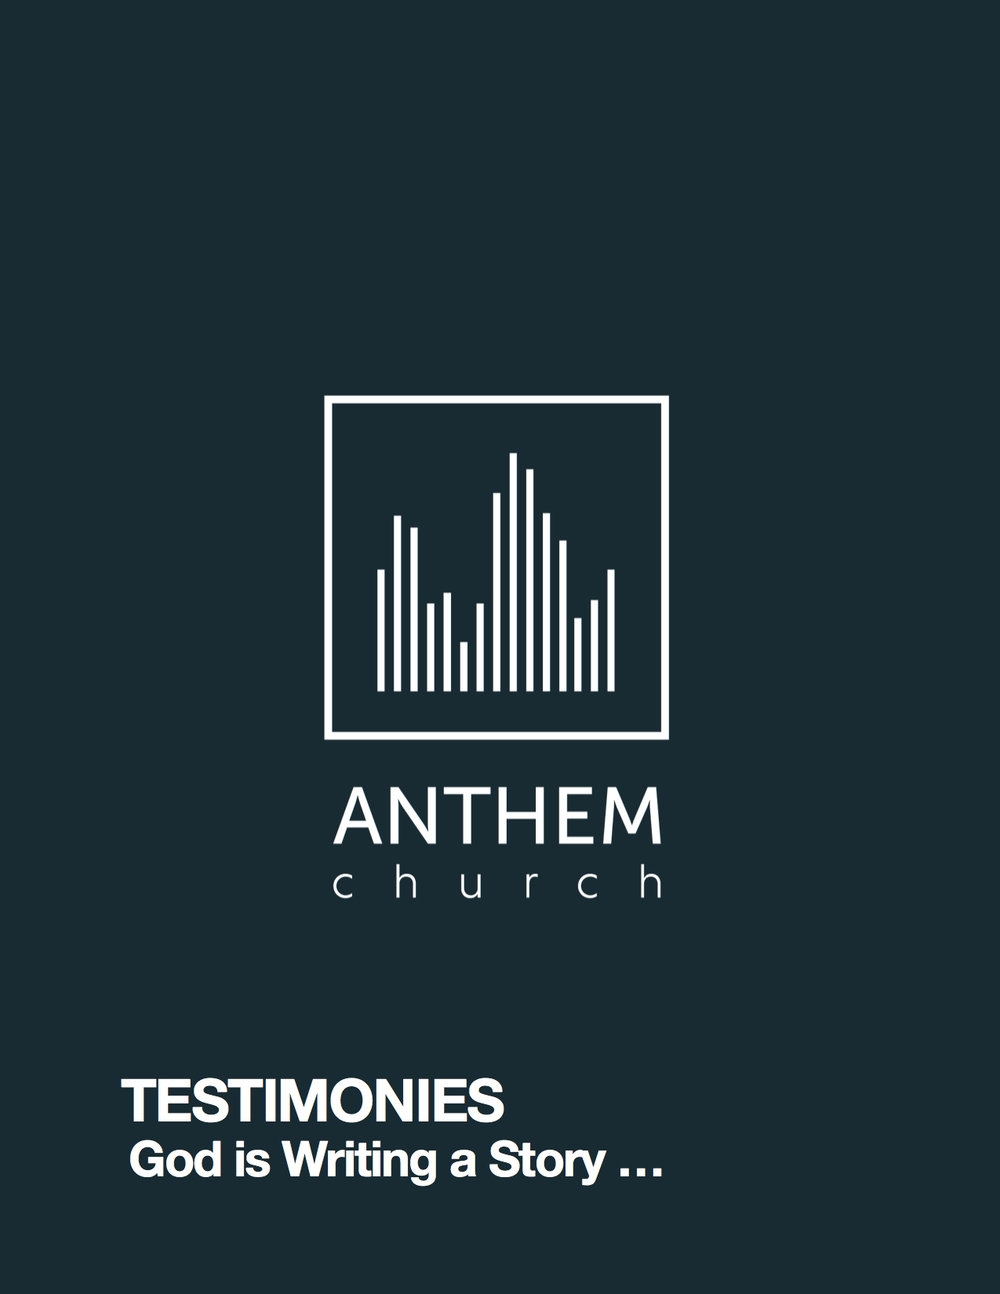 Anthem Church Testimonies.jpg